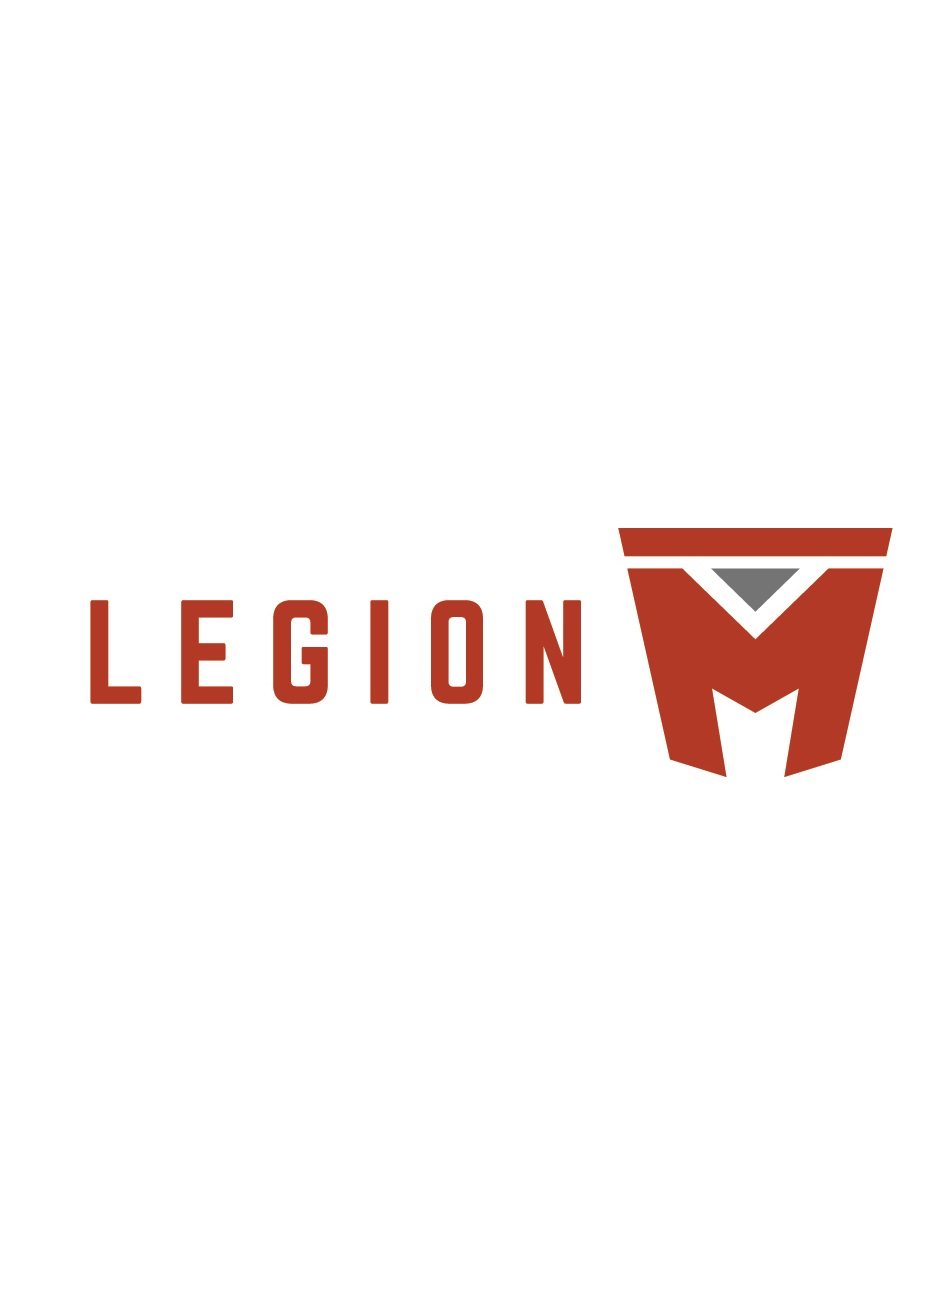 legion_m_color_horizontal-2.jpg